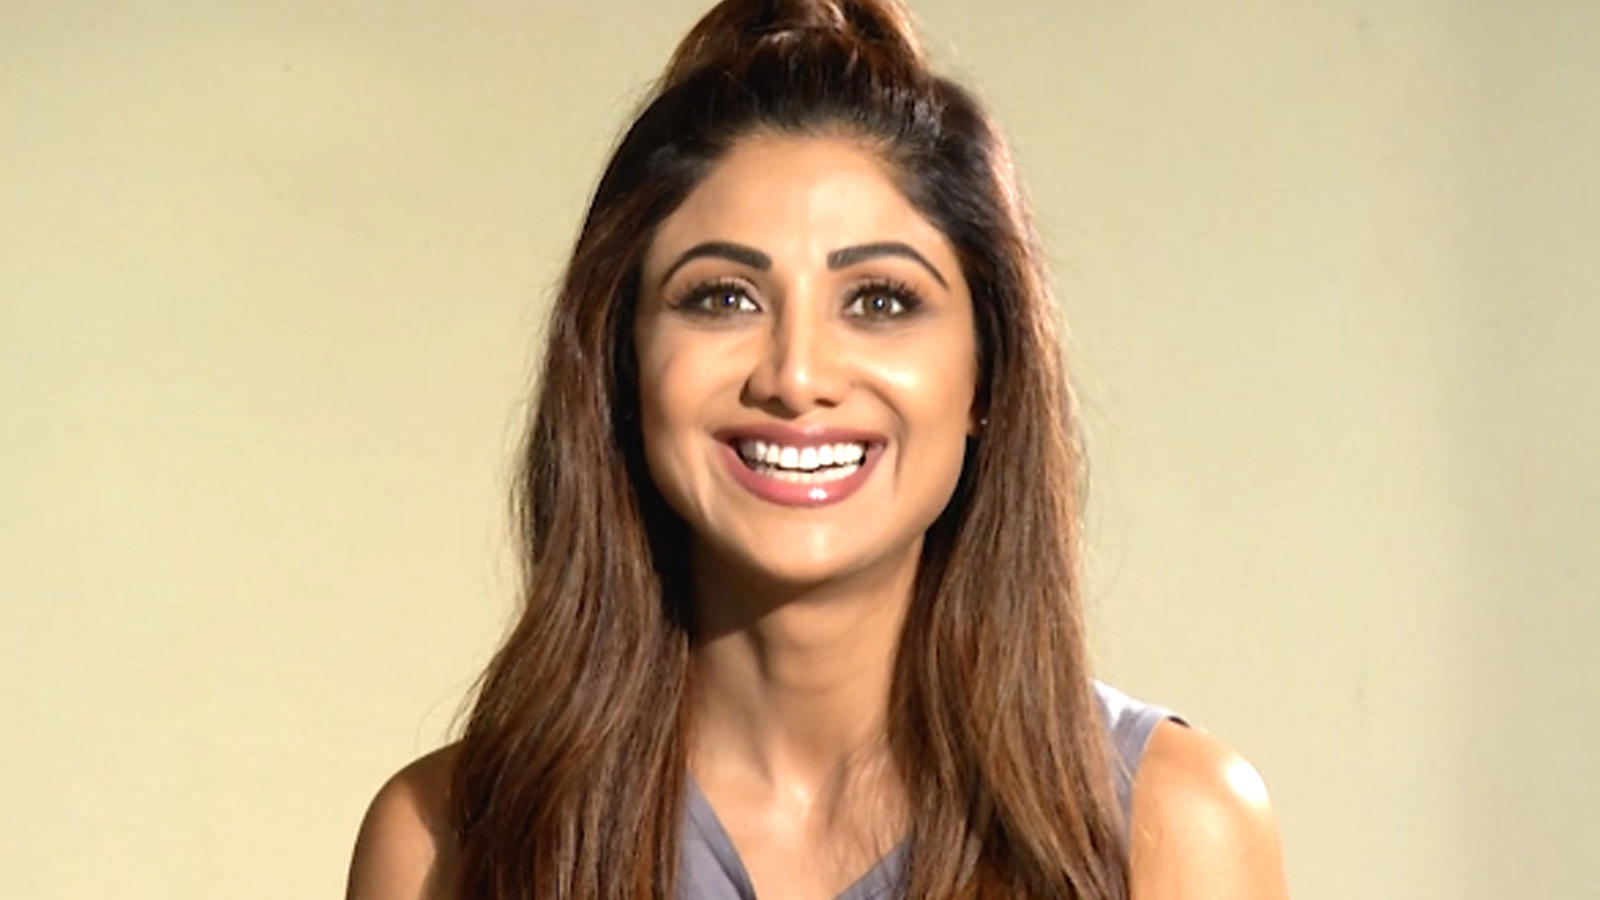 from-her-first-vacation-ever-to-the-age-she-start-dating-shilpa-shetty-reveals-all